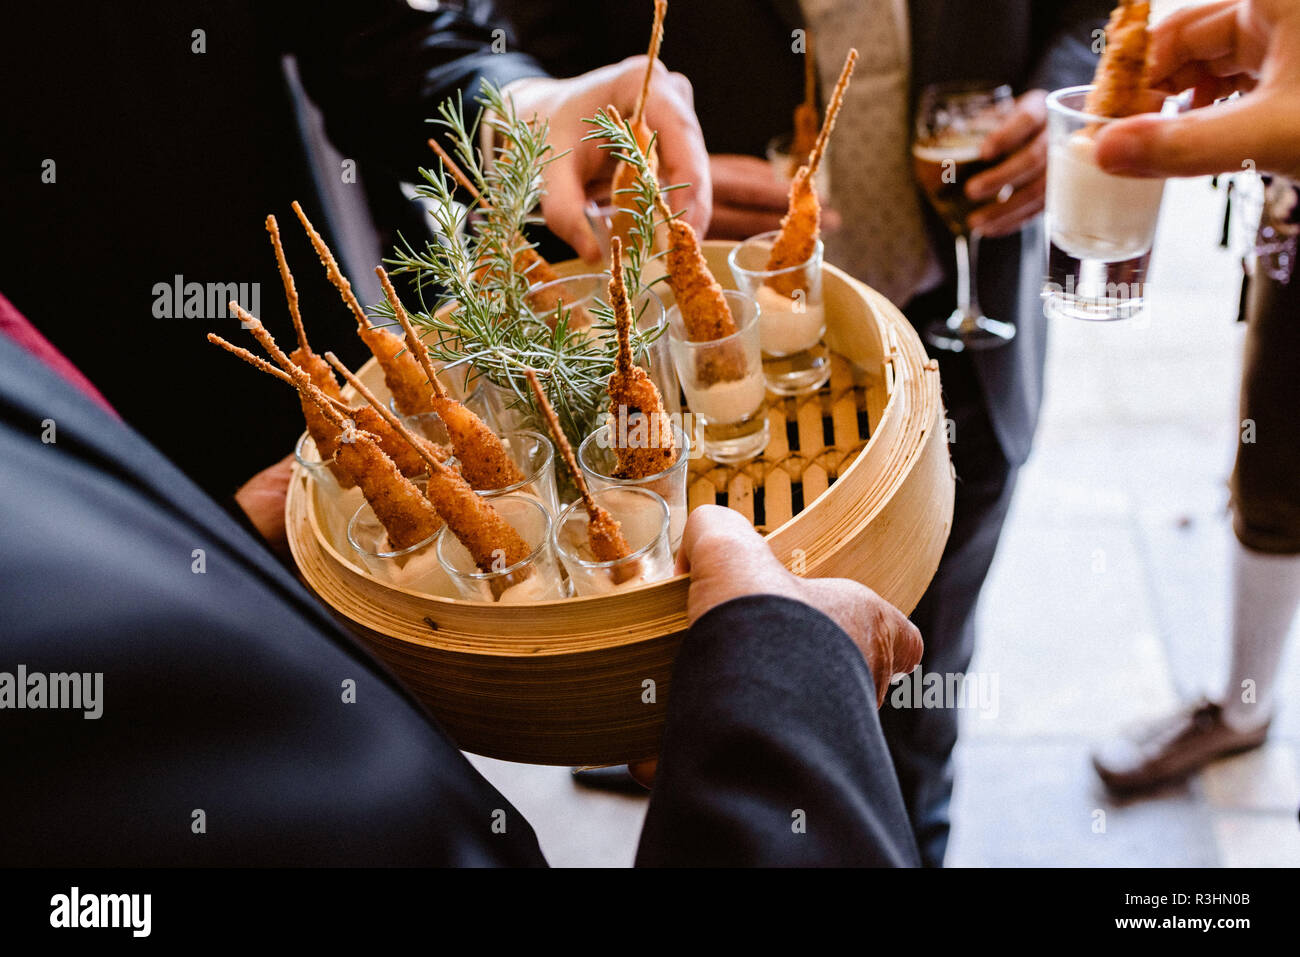 Tasty wedding appetizers served by waiters to the guests Stock Photo